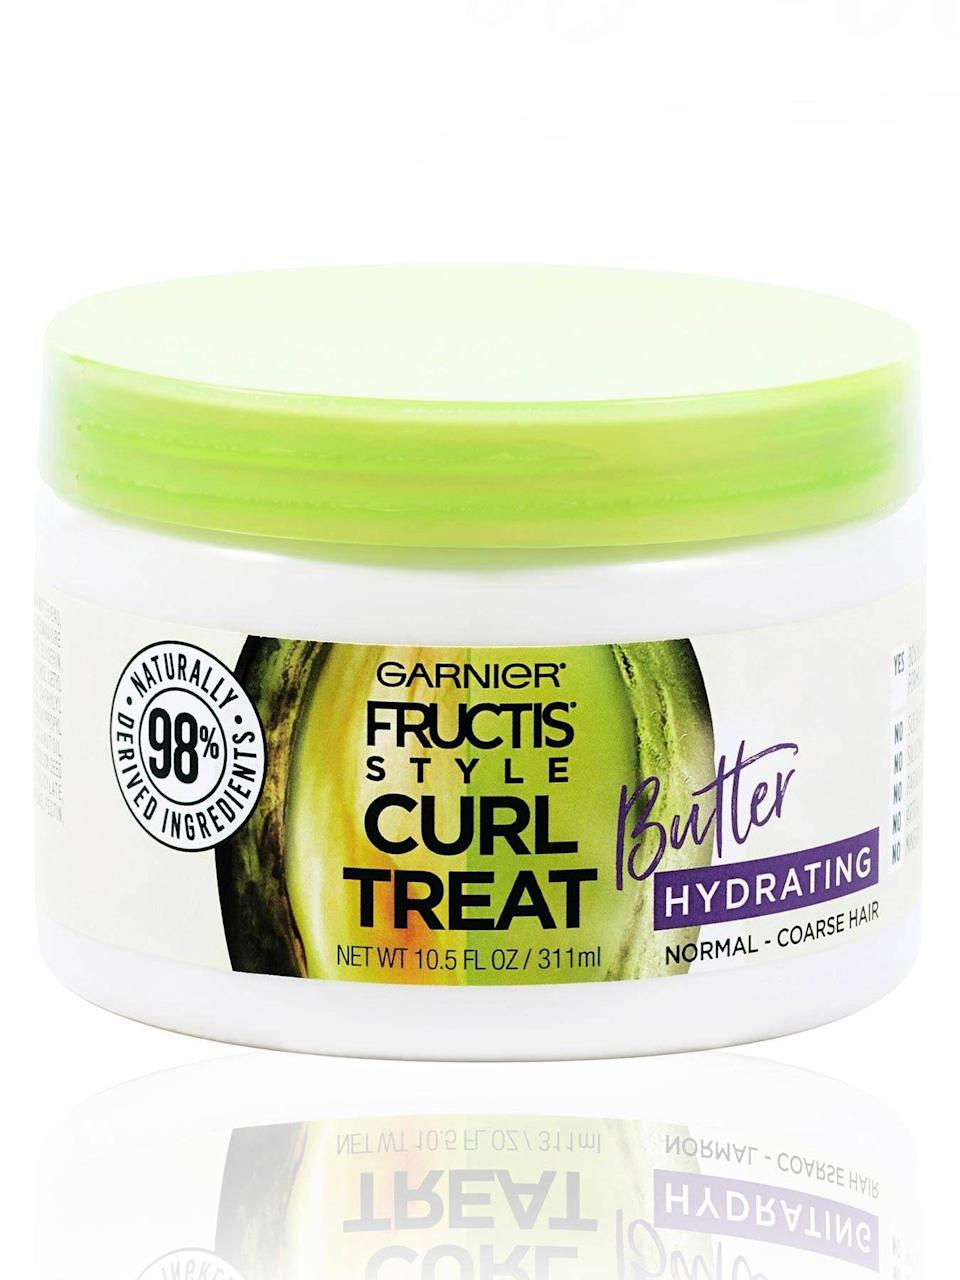 "<p><strong>Garnier</strong></p><p>amazon.com</p><p><strong>$6.99</strong></p><p><a href=""https://www.amazon.com/dp/B07KJ4ZD3C?tag=syn-yahoo-20&ascsubtag=%5Bartid%7C10055.g.33834712%5Bsrc%7Cyahoo-us"" rel=""nofollow noopener"" target=""_blank"" data-ylk=""slk:Shop Now"" class=""link rapid-noclick-resp"">Shop Now</a></p><p>It's affordably-priced, yet this Garnier curl butter cream is <strong>made from almost 100% naturally-derived ingredients</strong>, including coconut oil and cocoa butter. ""My miracle in a jar,"" an Amazon reviewer enthused. ""It defines my curls while leaving my hair soft and manageable.""</p>"